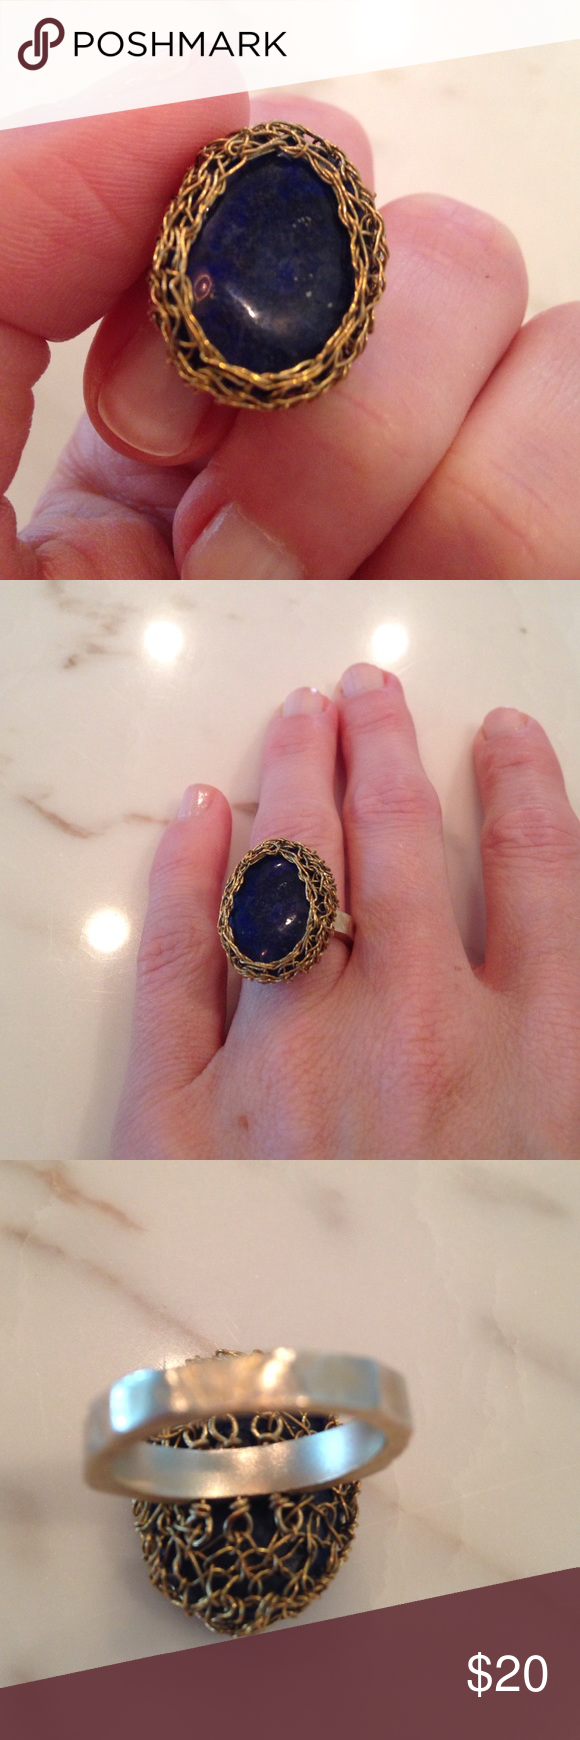 Natural Lapis ring Great ring! Blue lapis stone. Rocking setting, subtle movement with the wire basket setting. Natural organic stone! Anthropologie Jewelry Rings